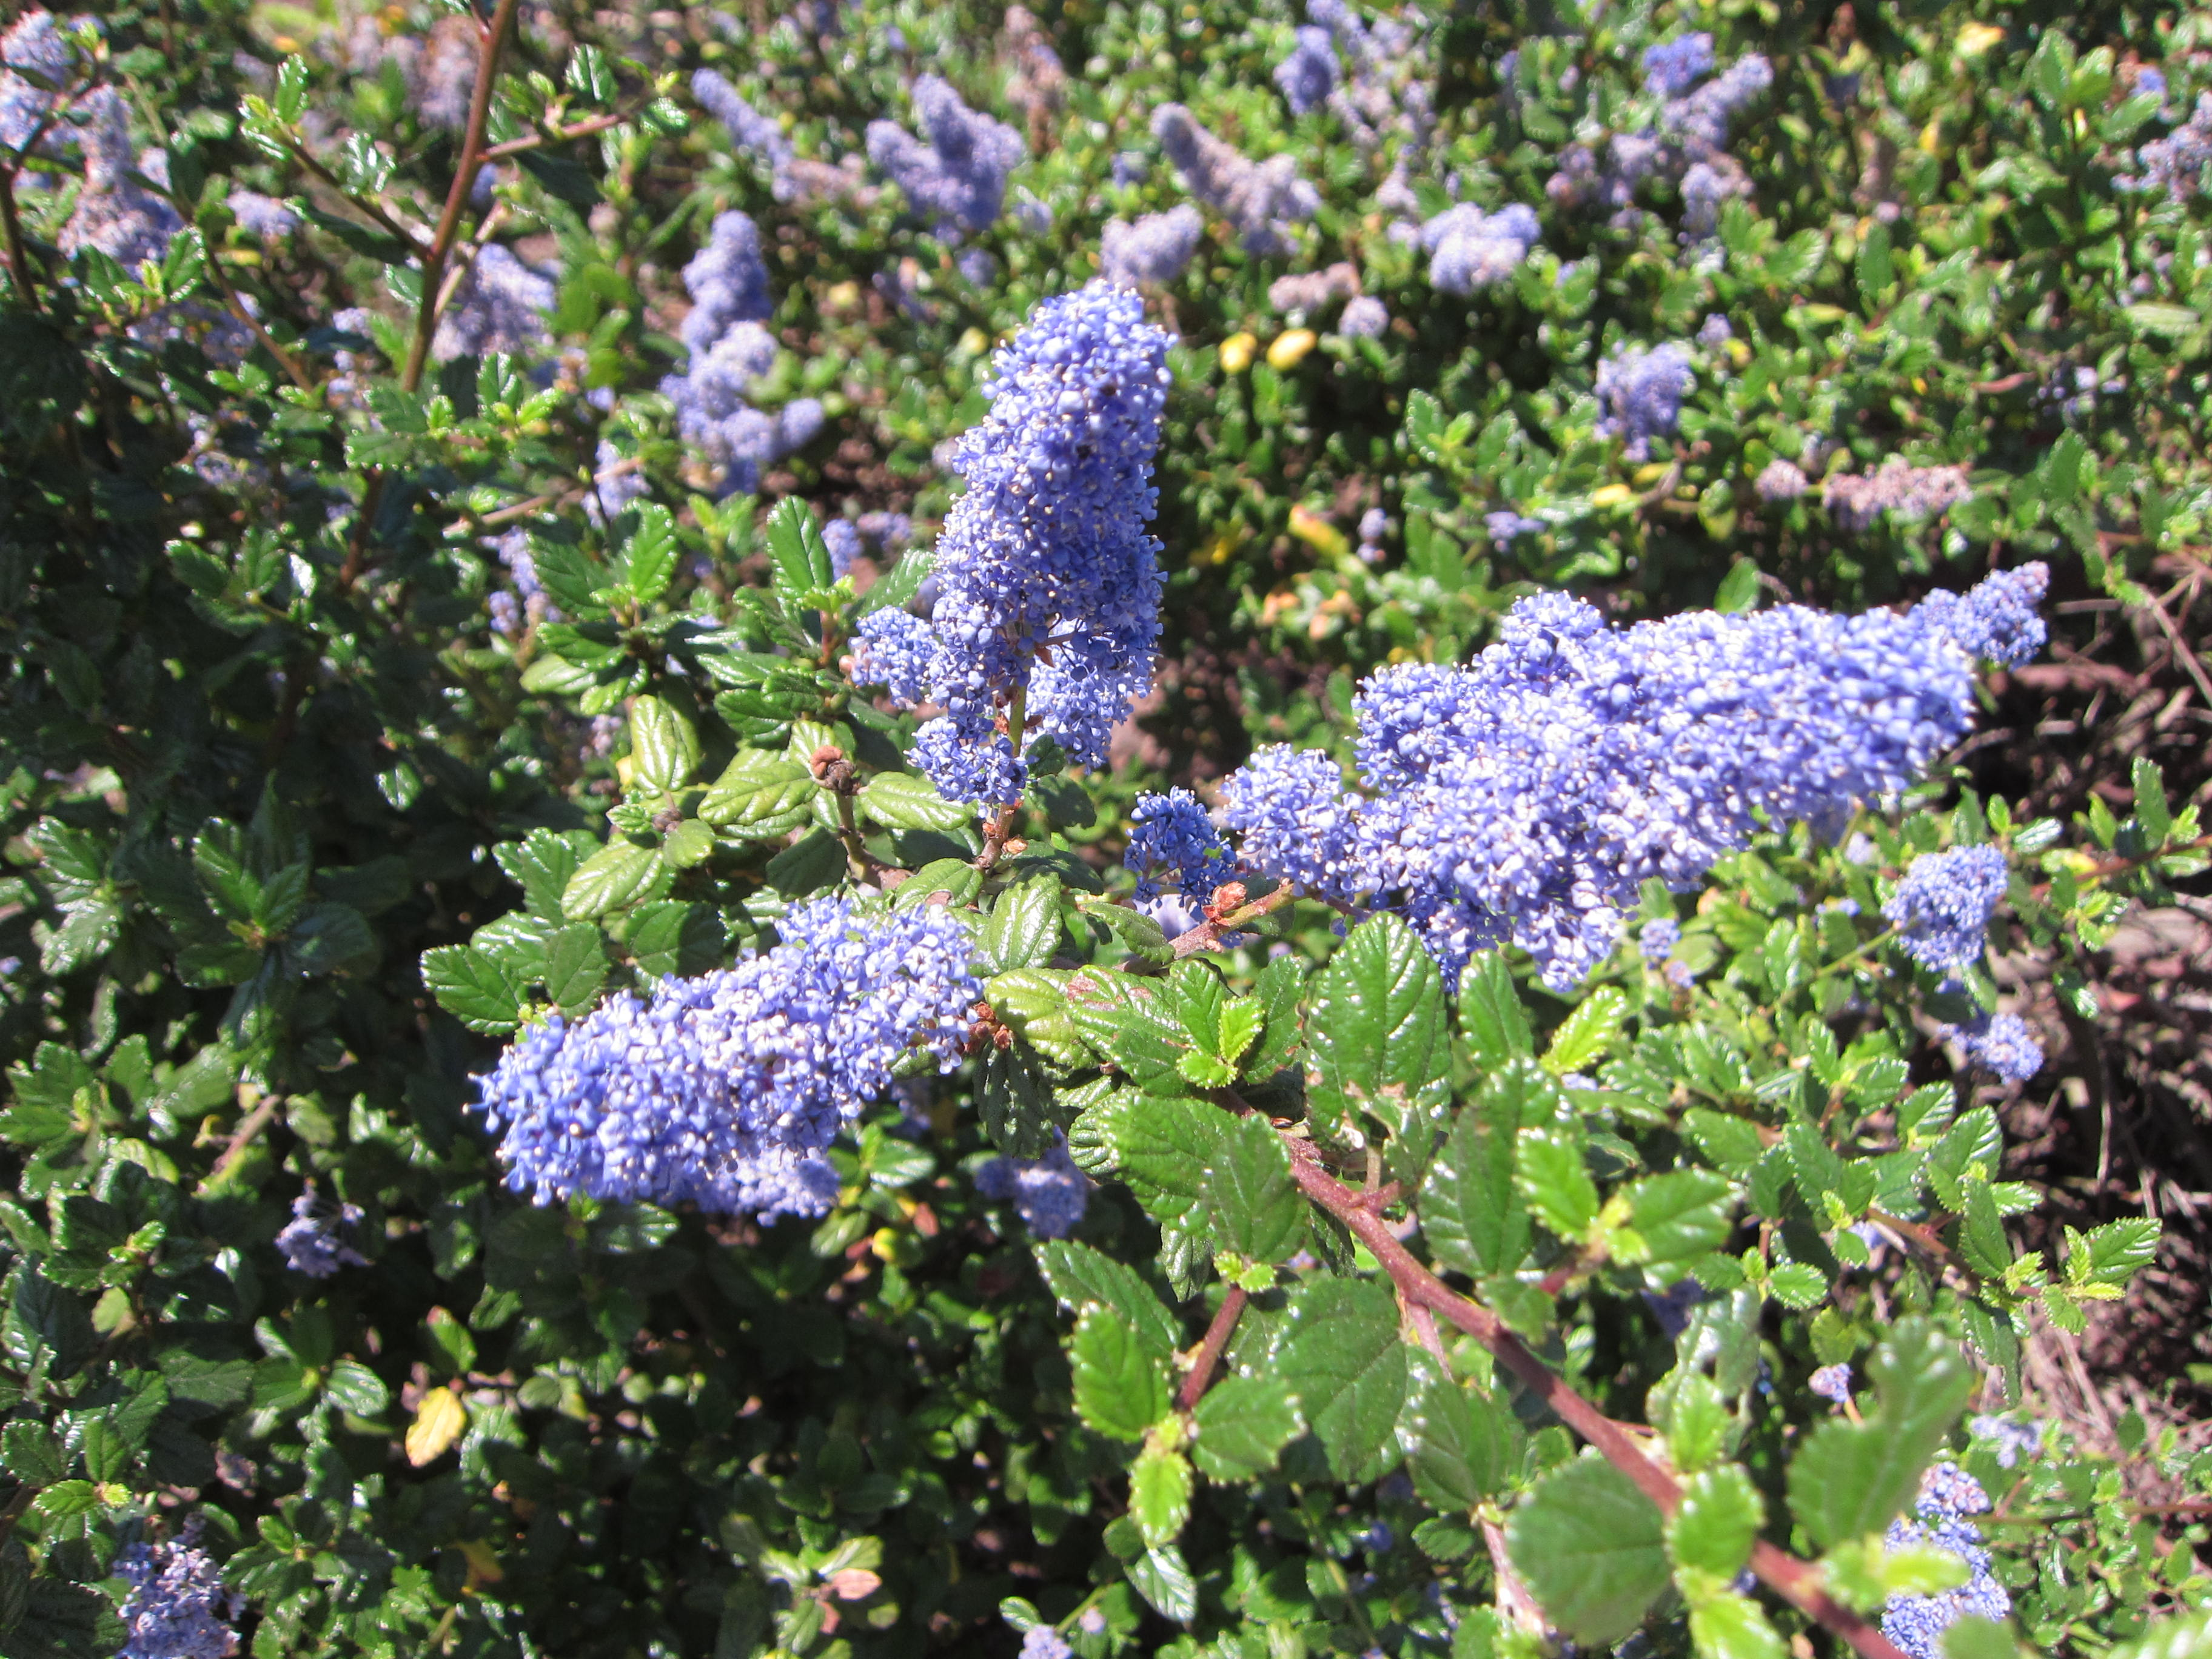 The bees are loving this Ceanothus (California Lilac).